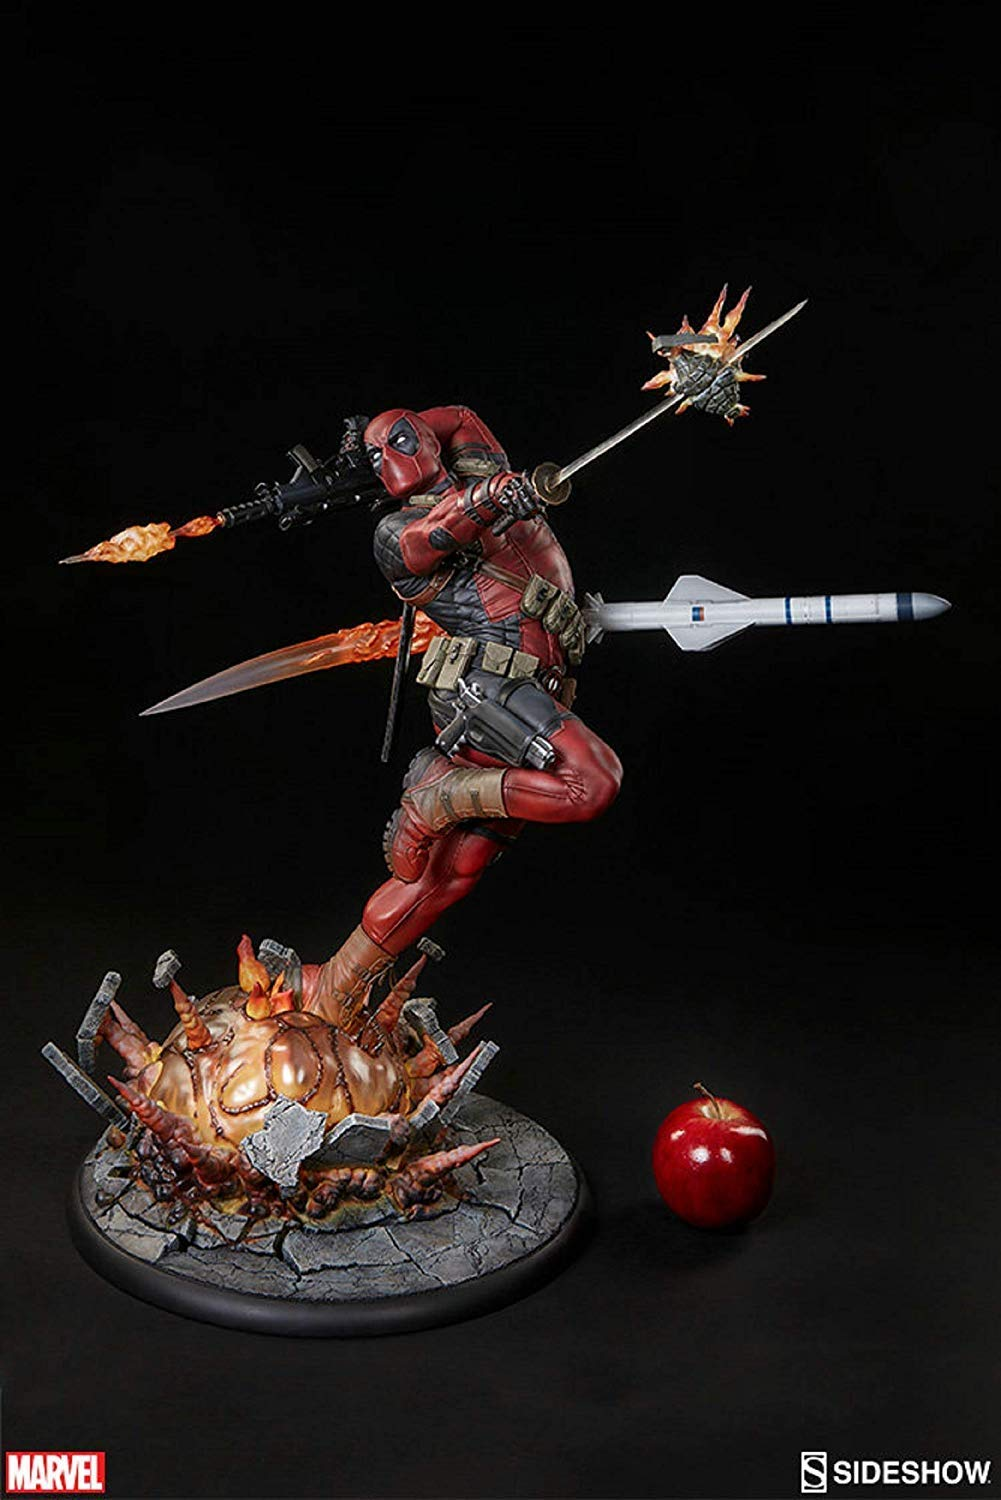 Sideshow 300511 - Marvel - Deadpool